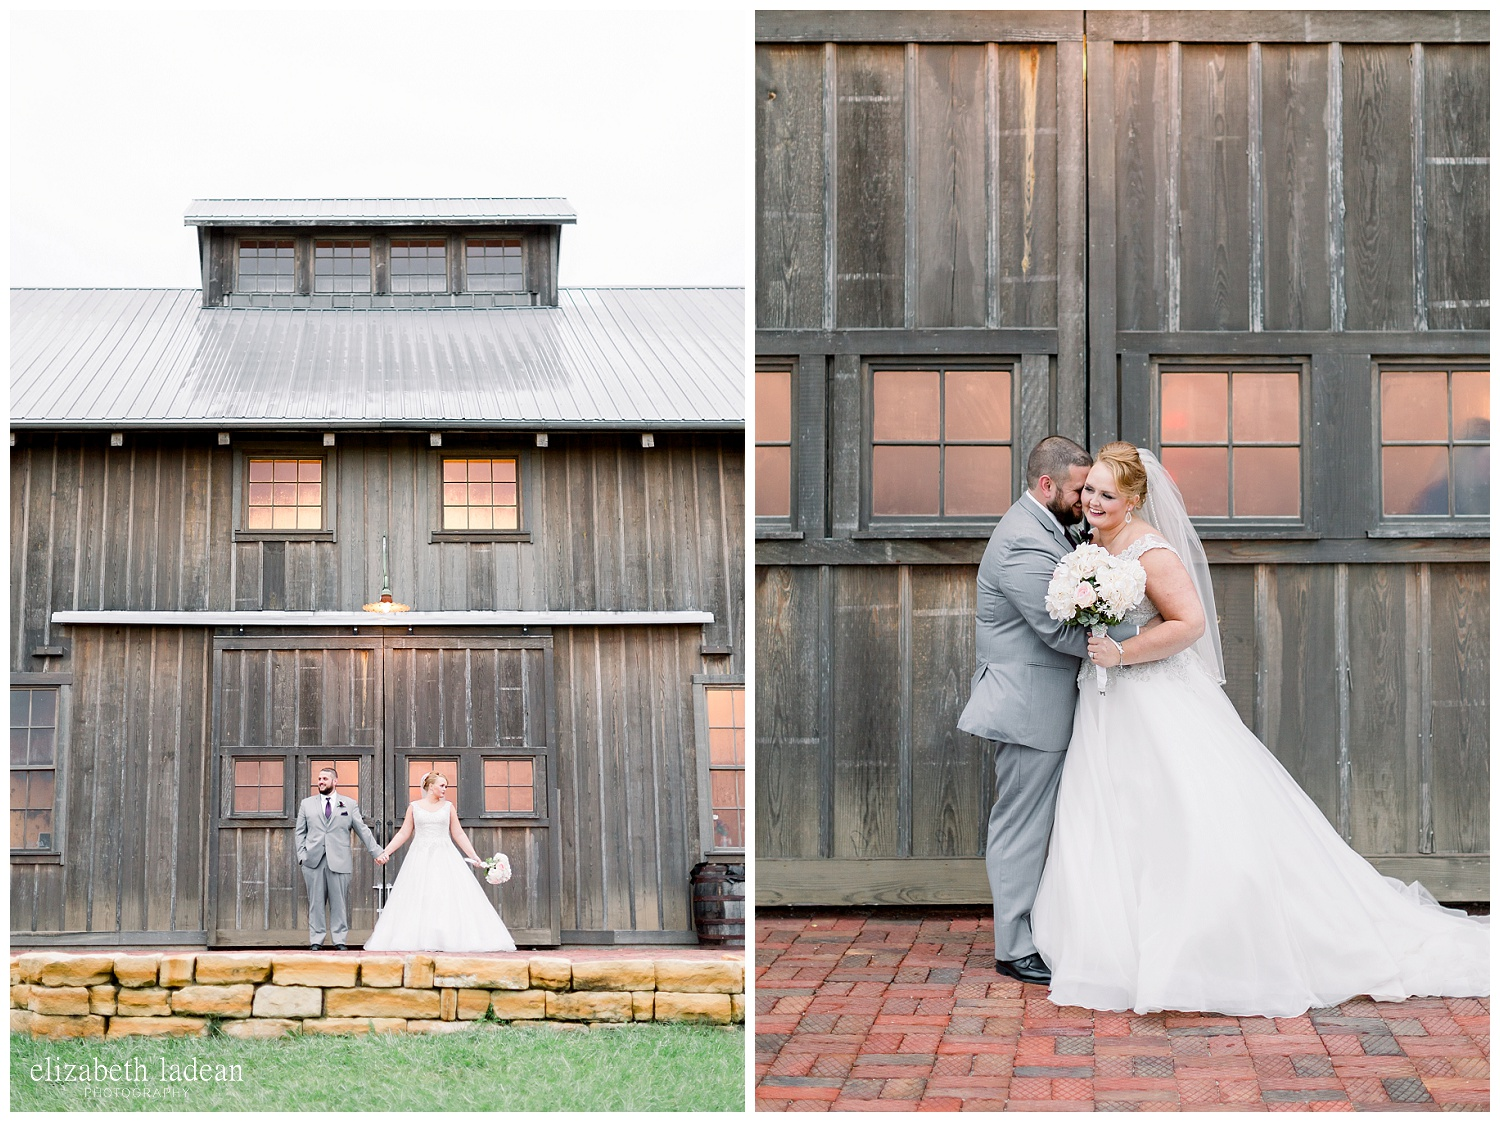 Weston-Timber-Barn-Wedding-Photography-L+A-elizabeth-ladean0photo_1901.jpg